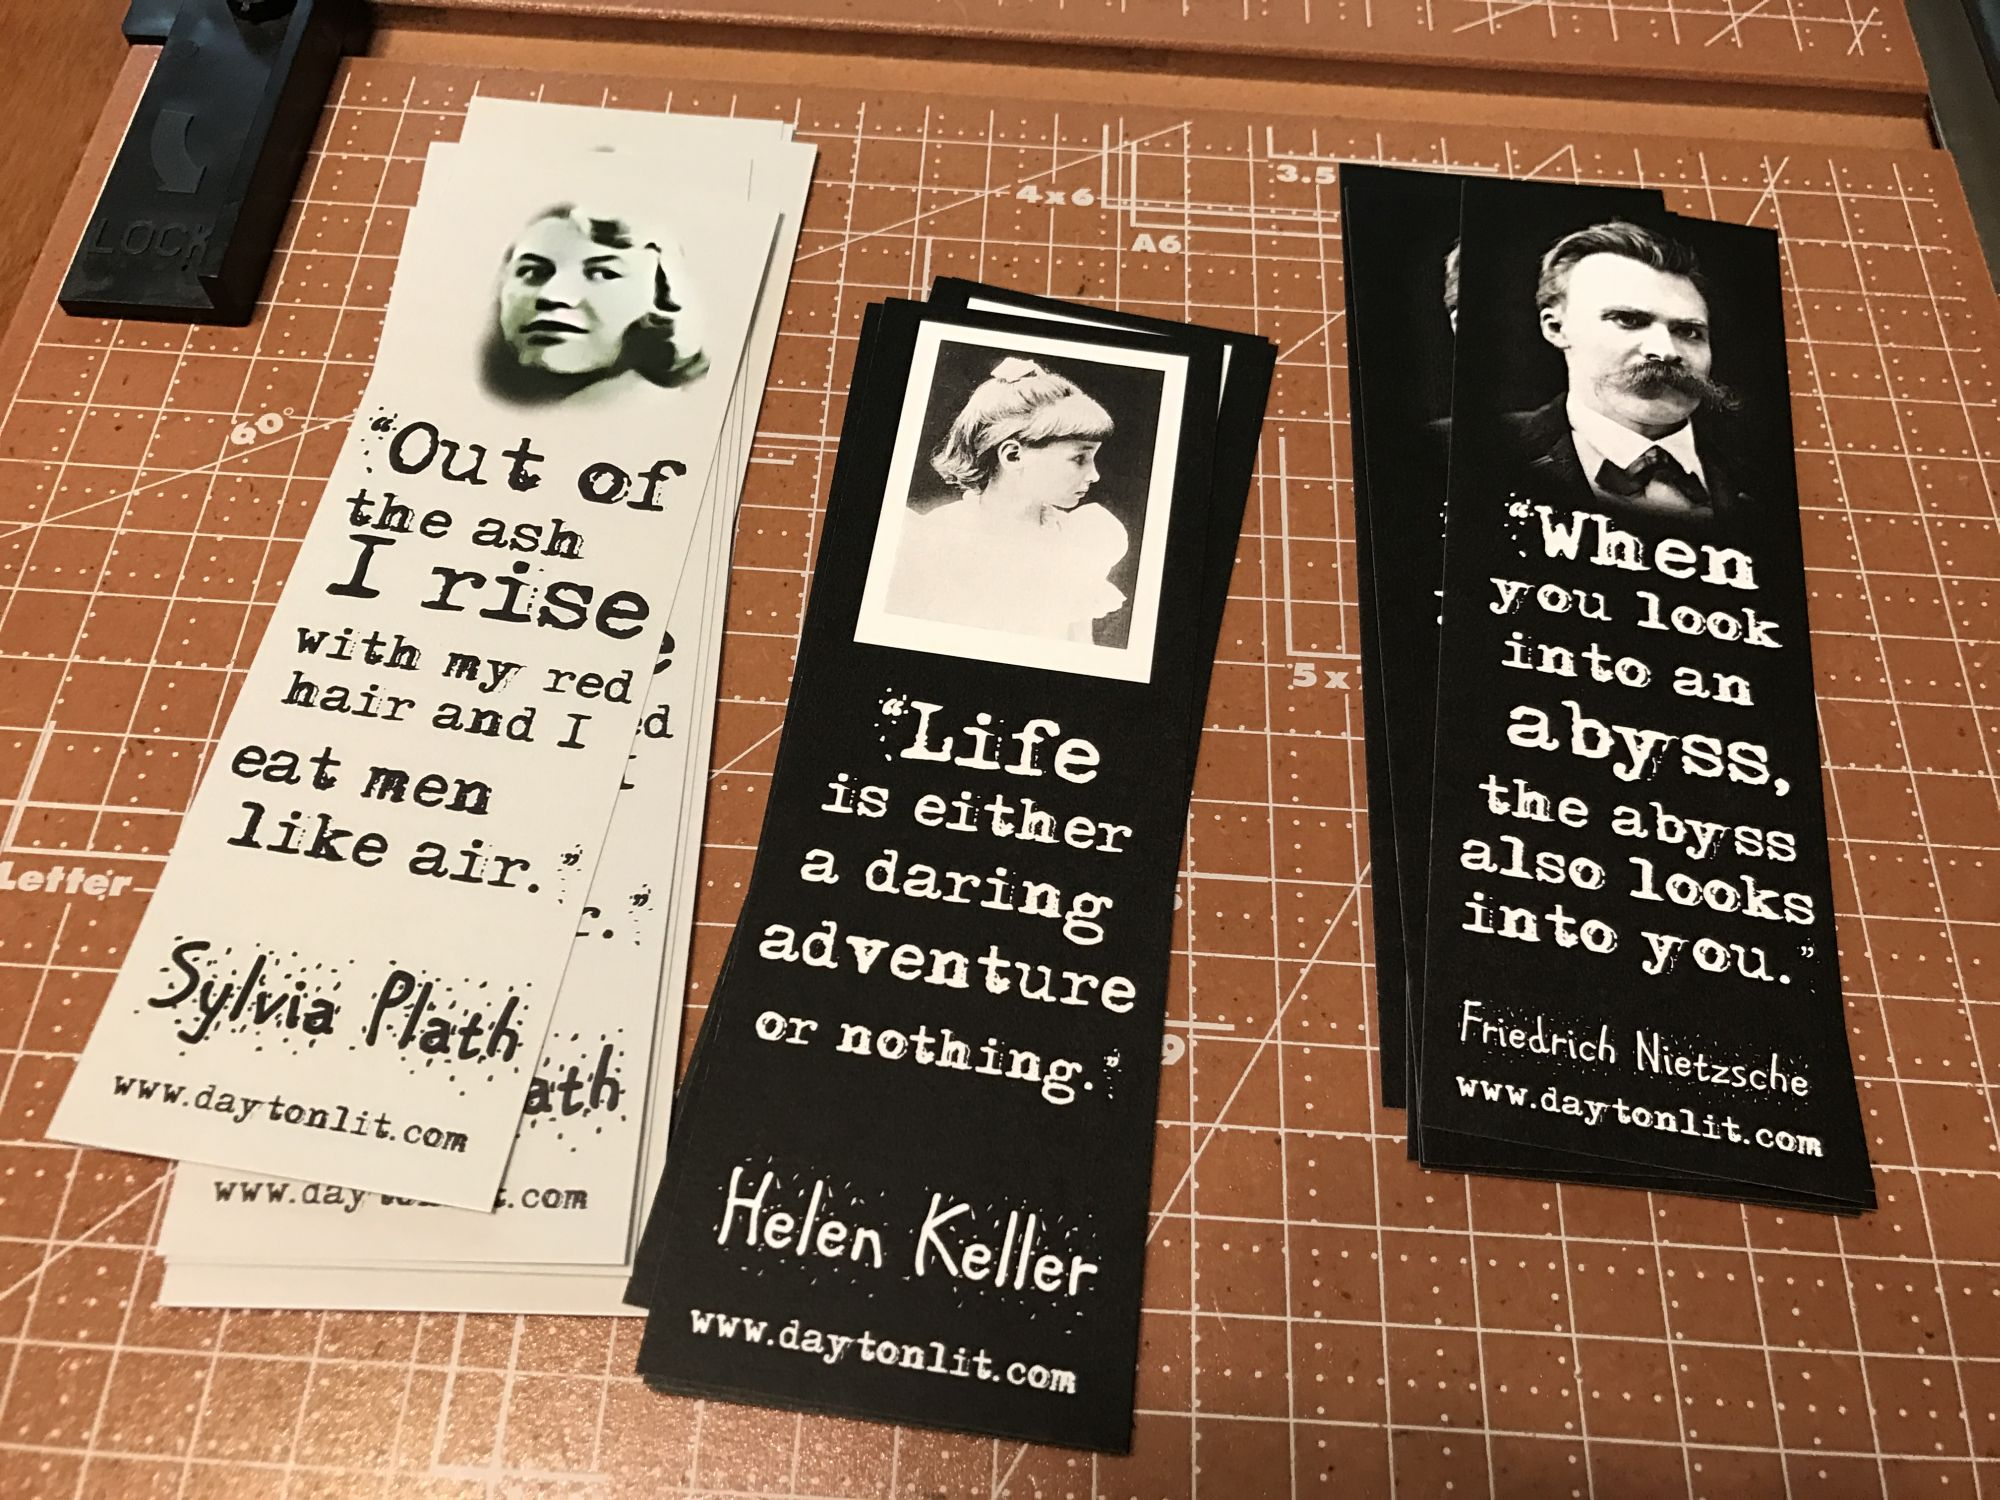 Bookmarks I made as giveaways at the conference.